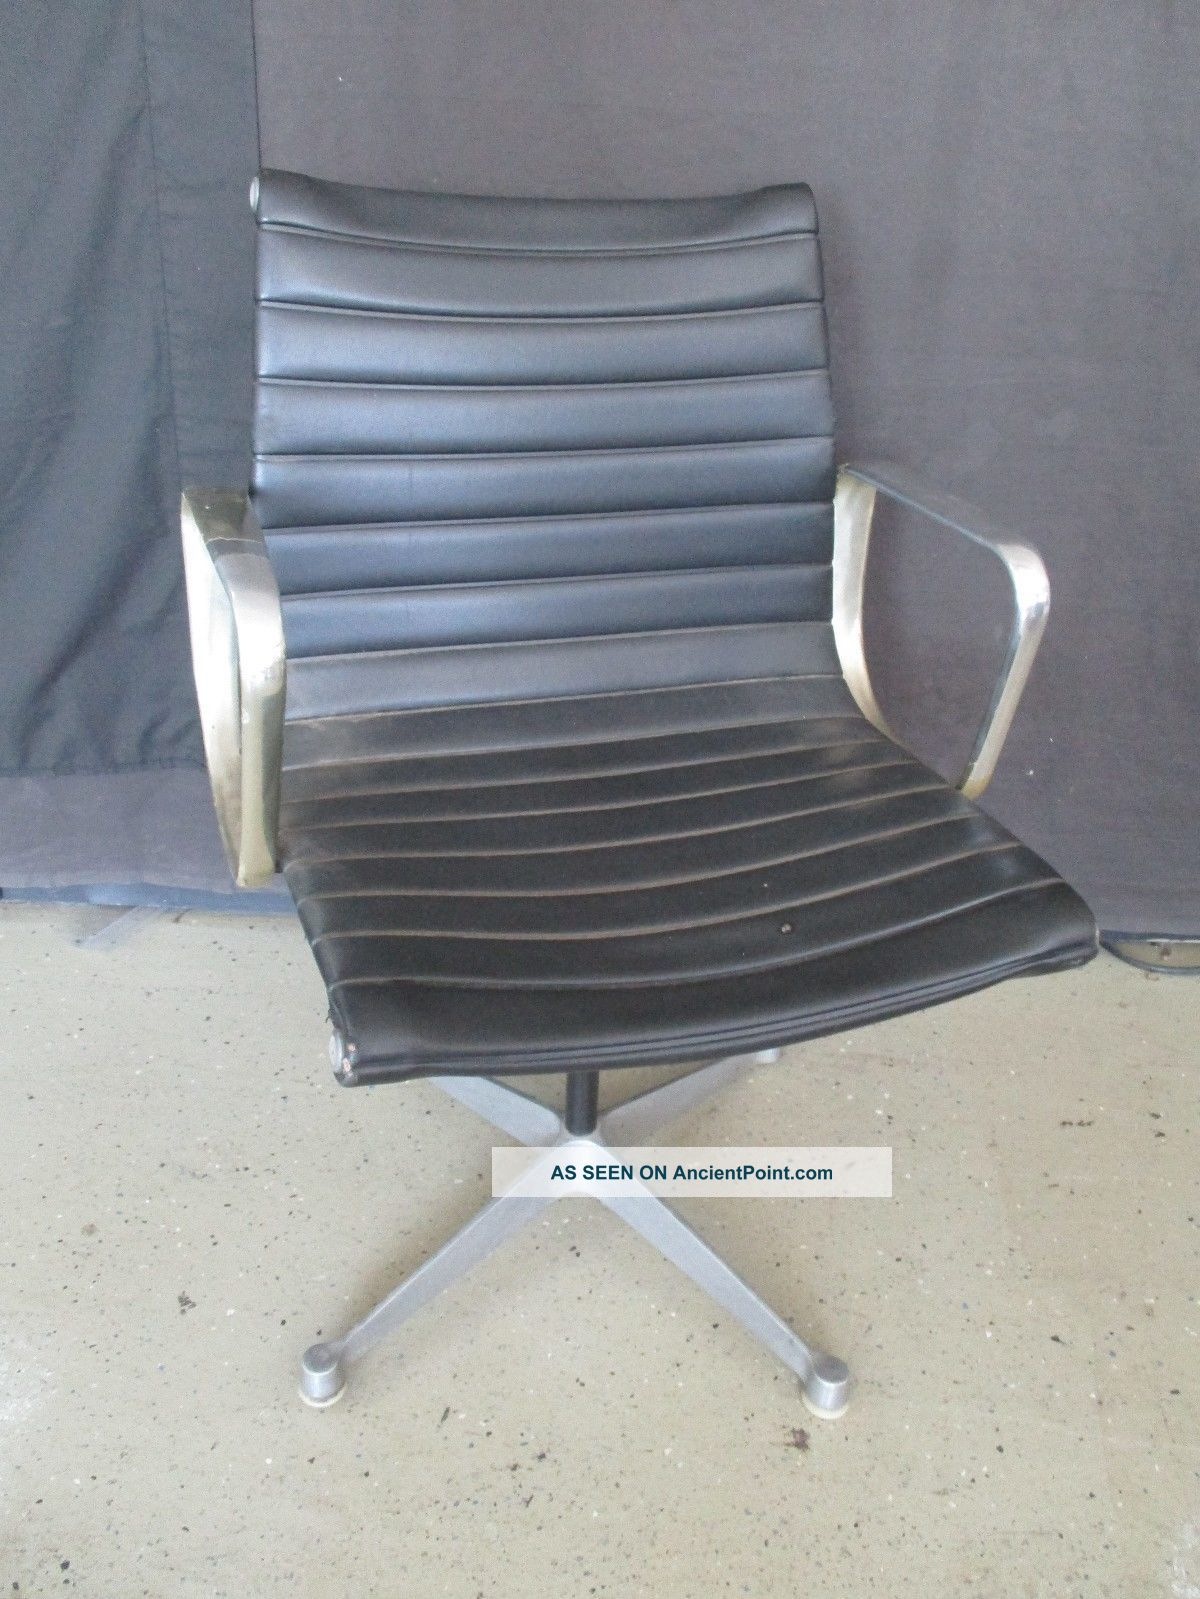 Click photo to enlarge category furniture chairs post 1950 uploaded